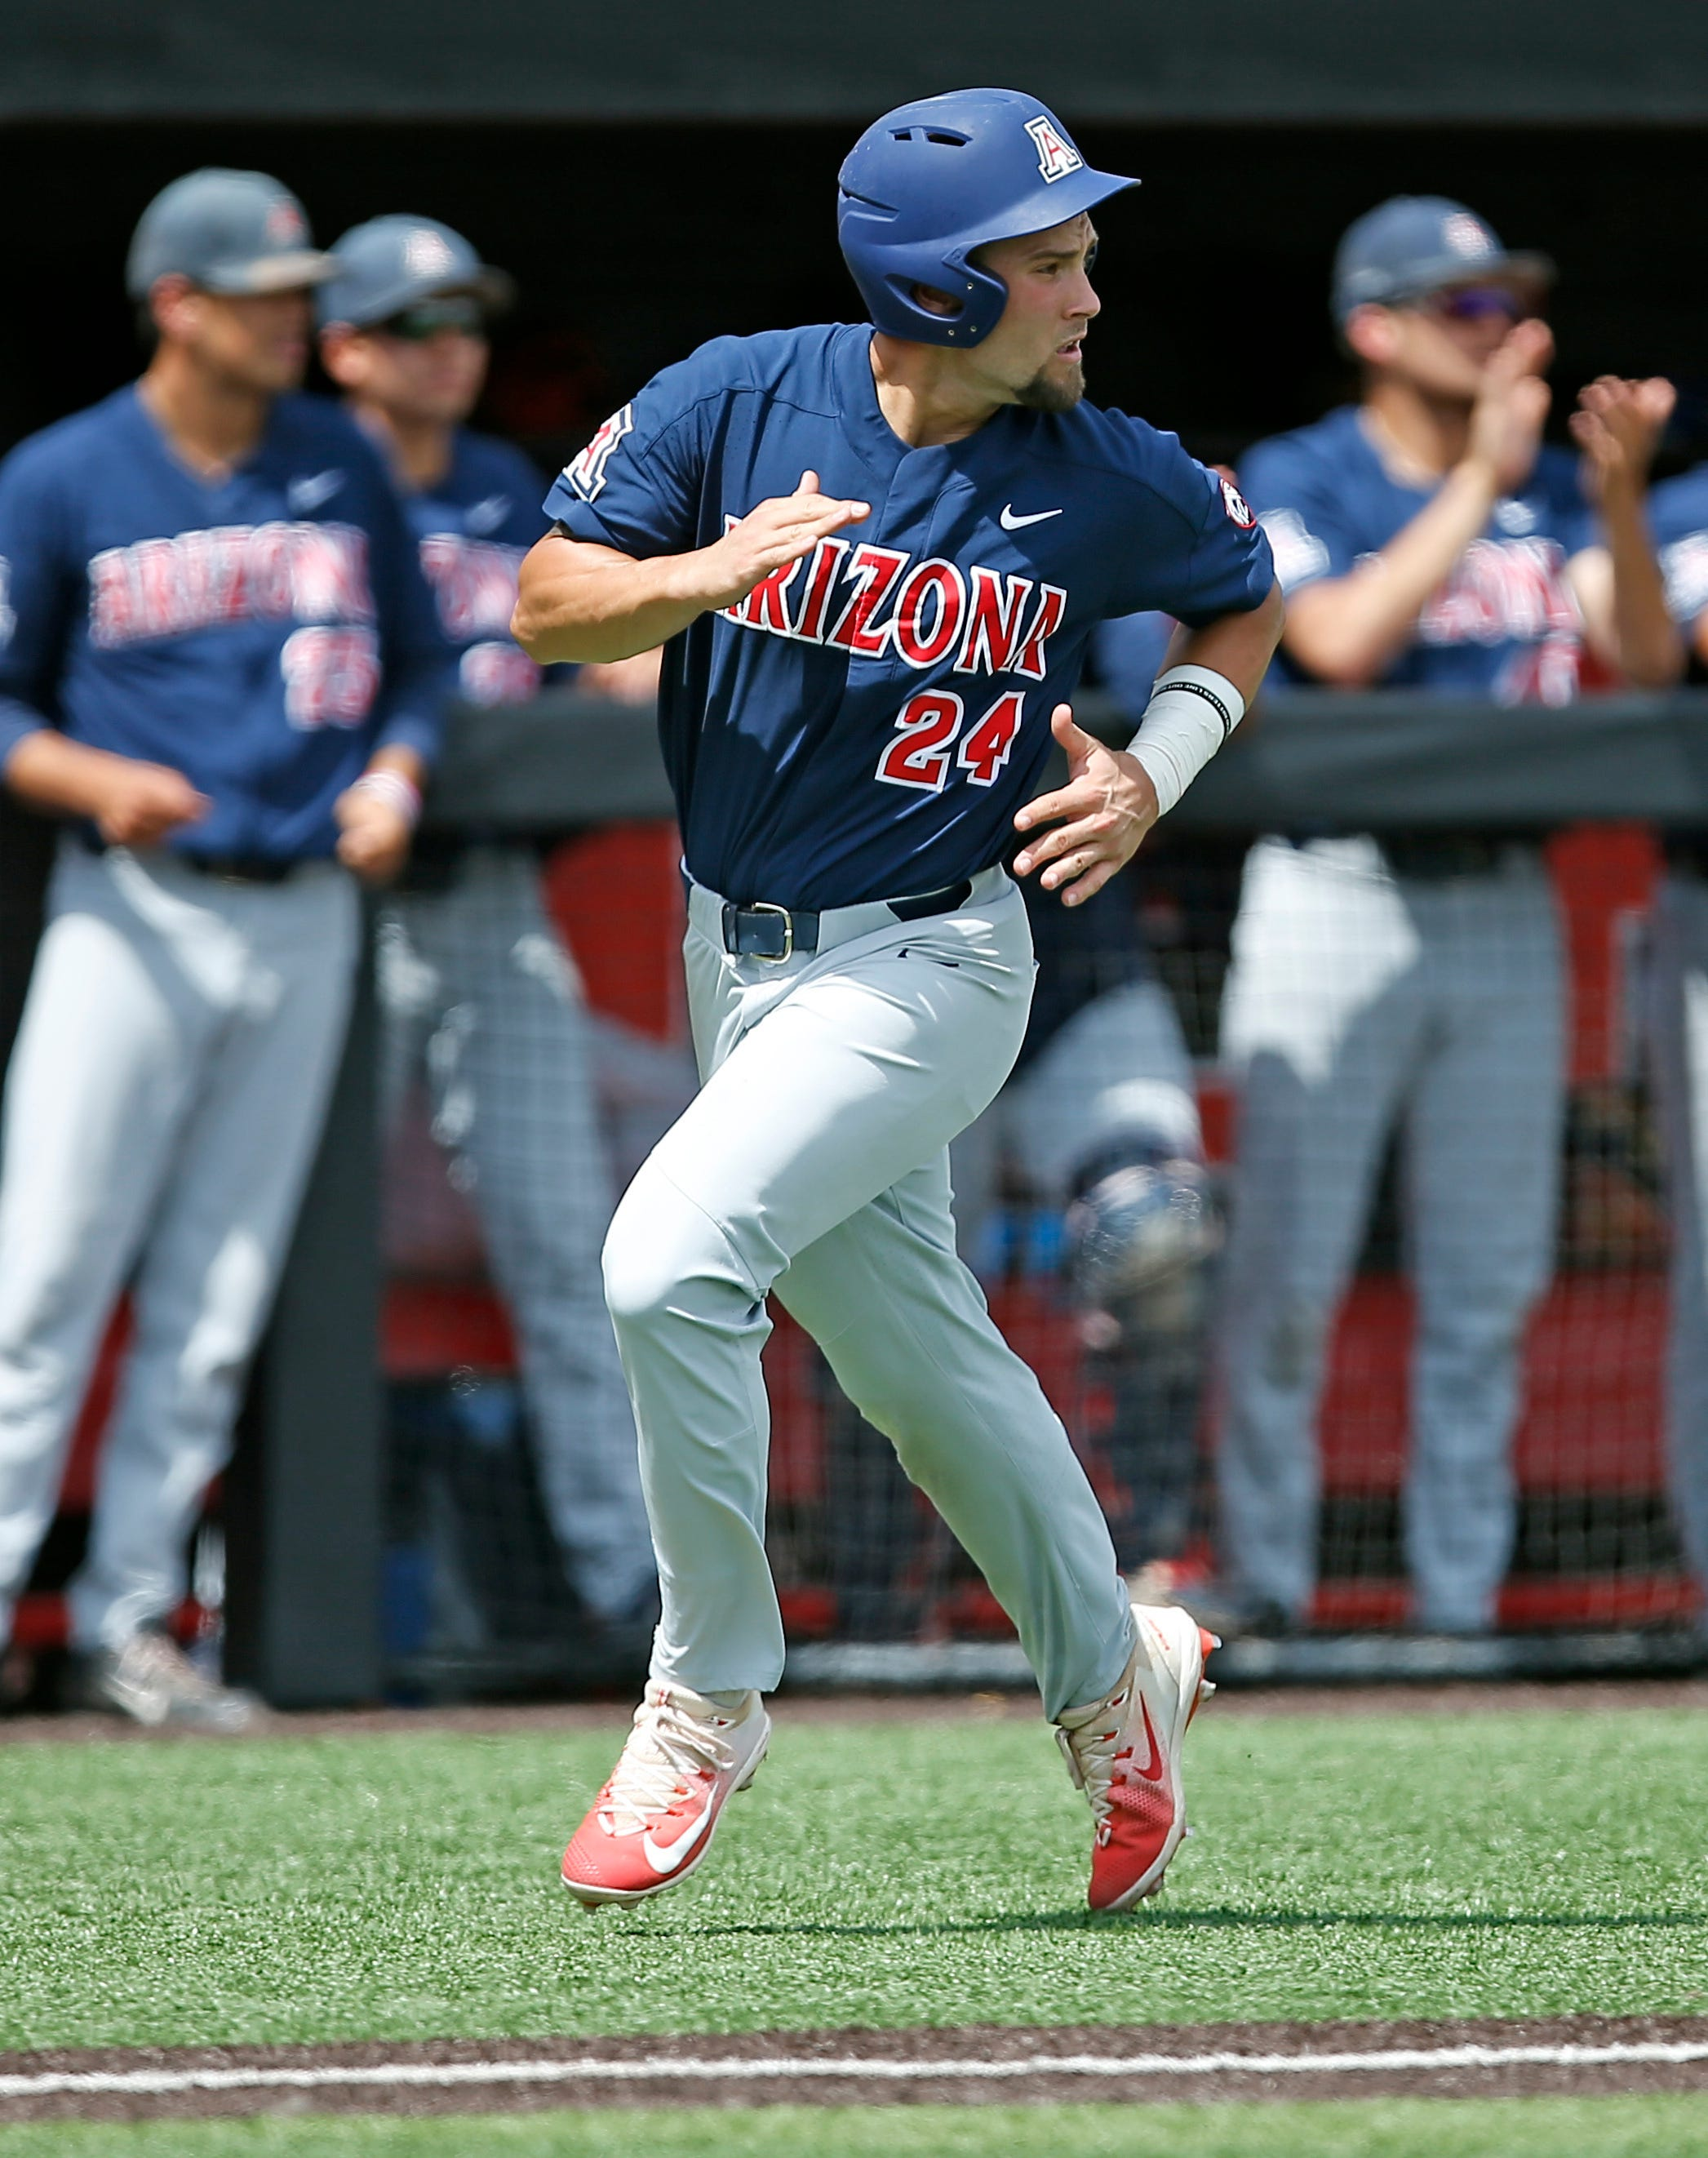 Arizona baseball tops Delaware to stay alive in NCAA regional